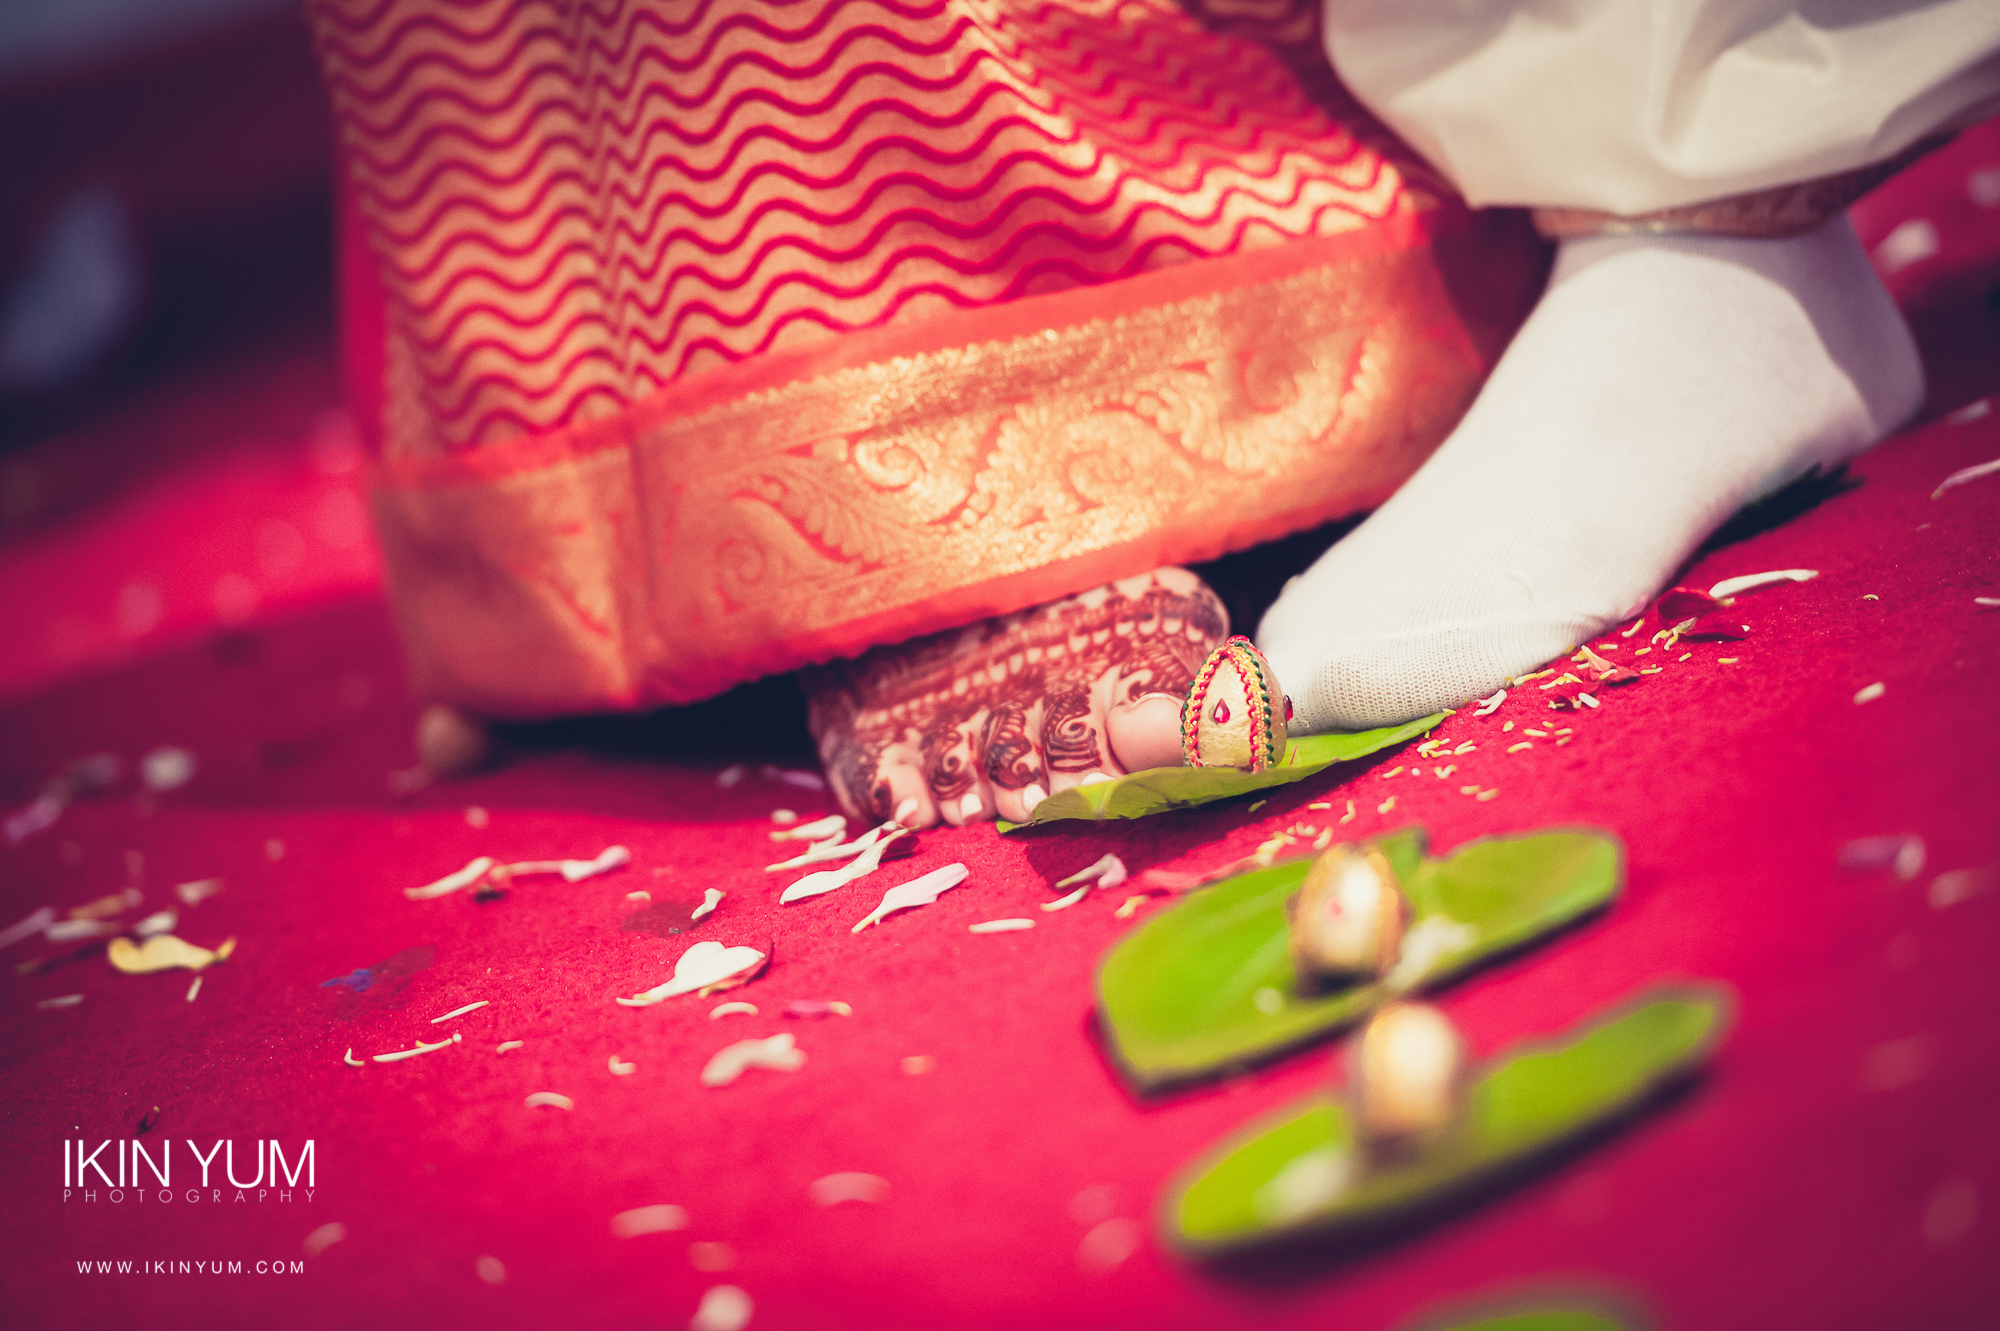 Grand Connaught Rooms Wedding - Minal & Raj - Ikin Yum Photography-063.jpg